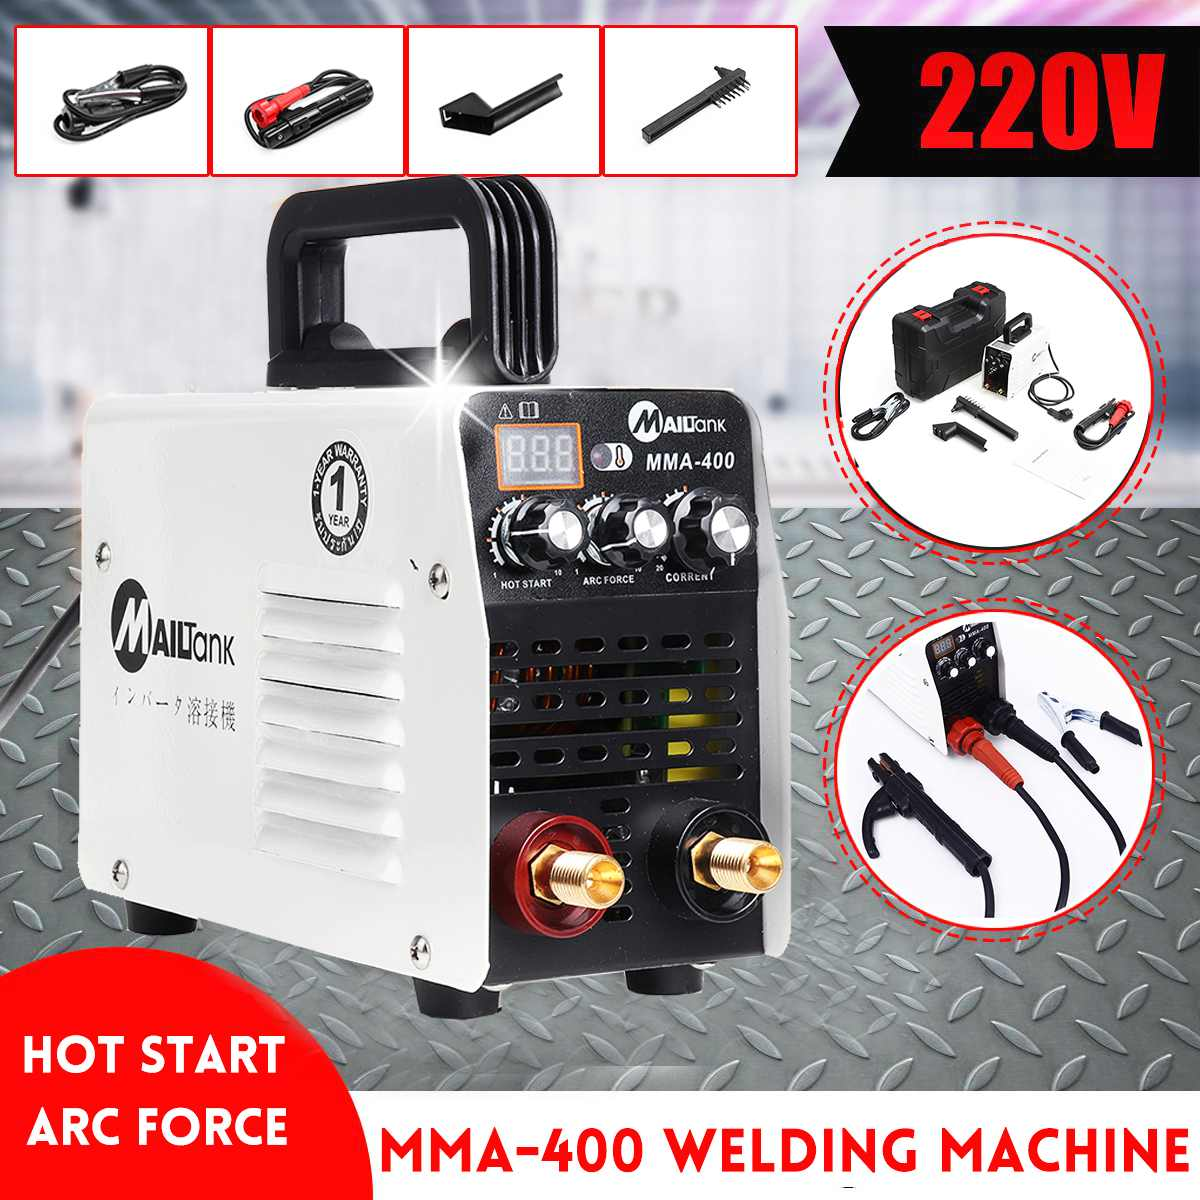 Digital Display IGBT Inverter Welder Hot Start MMA 220V Mini Arc Welder Welding Machine Tools For Welding Working Power Tools